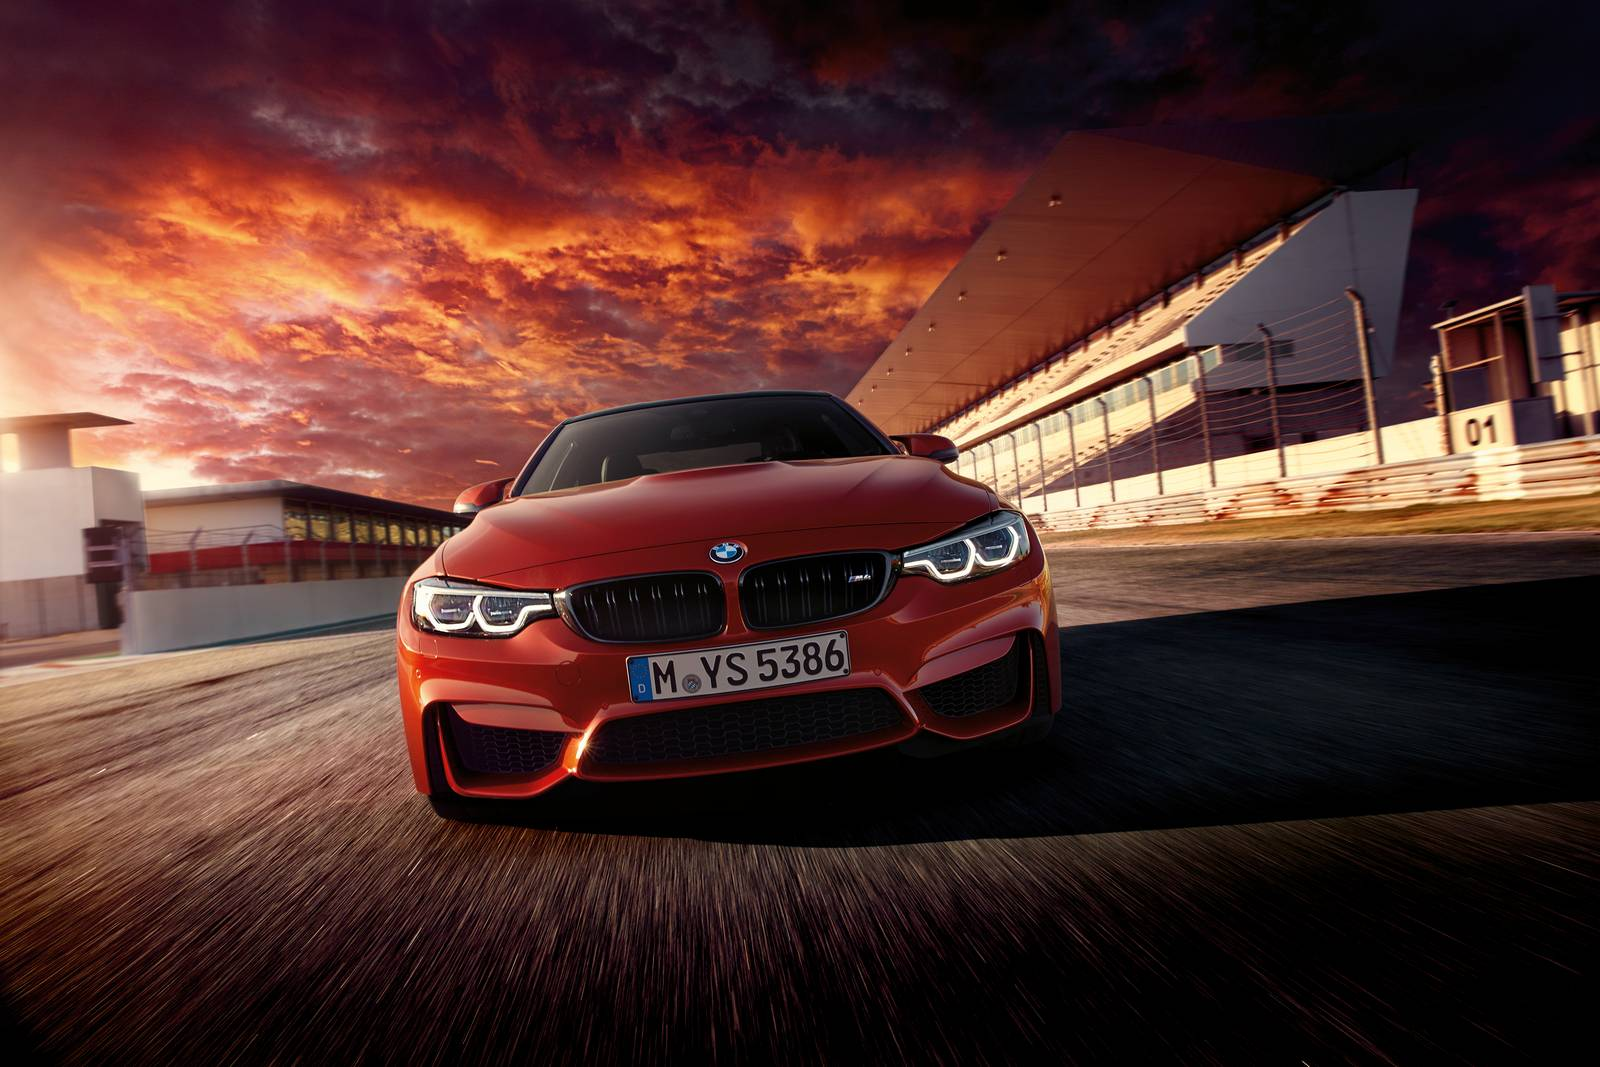 BMW Have Recently Updated The BMW M4 And BMW 4 Series Range To Offer A  Mildly Tweaked Exterior Design Together With A Set Of Interior Features.  The Car Will ...